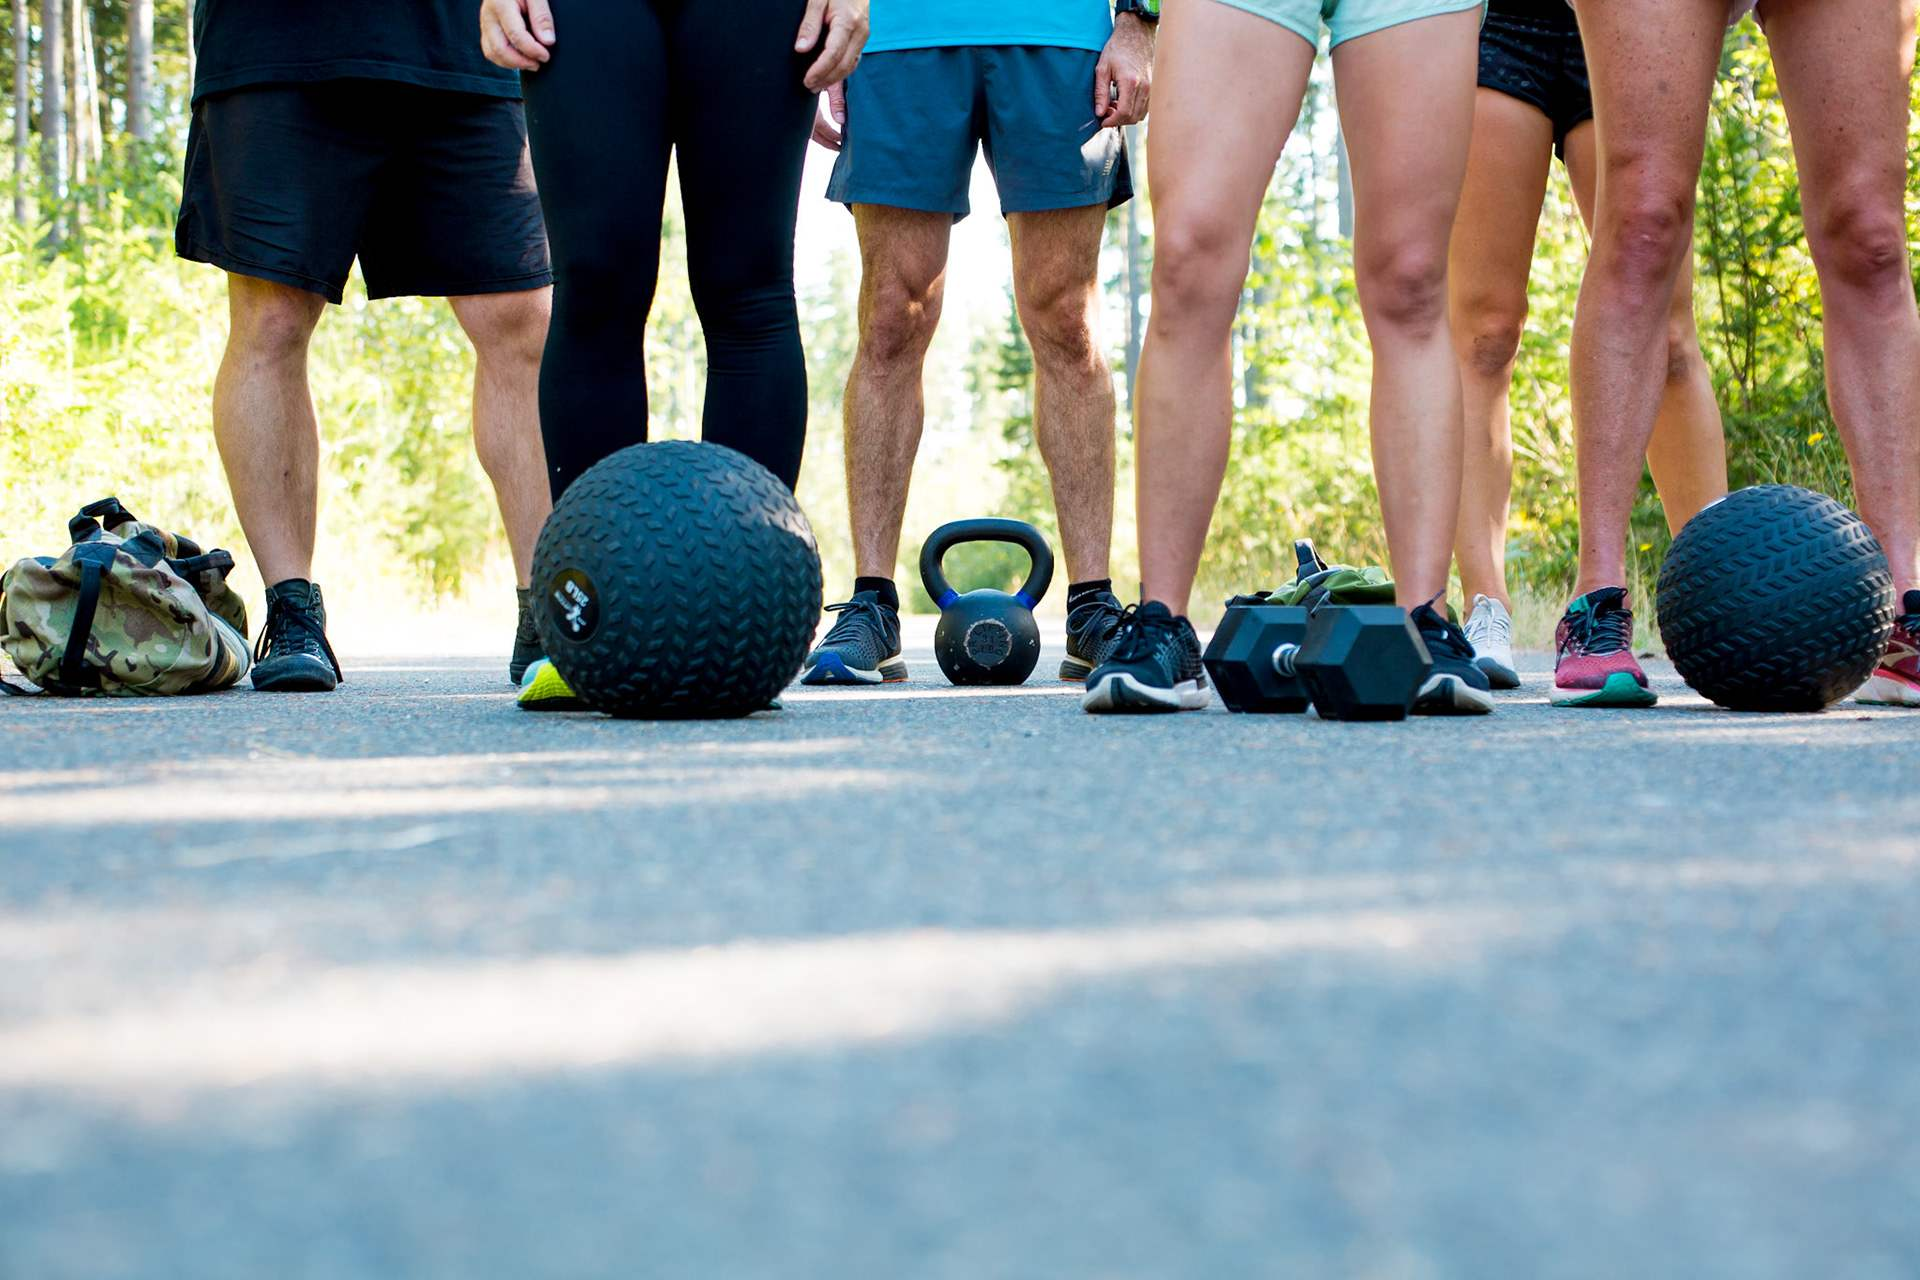 Outdoor fitness class with dumbbells, slam ball, kettlebell